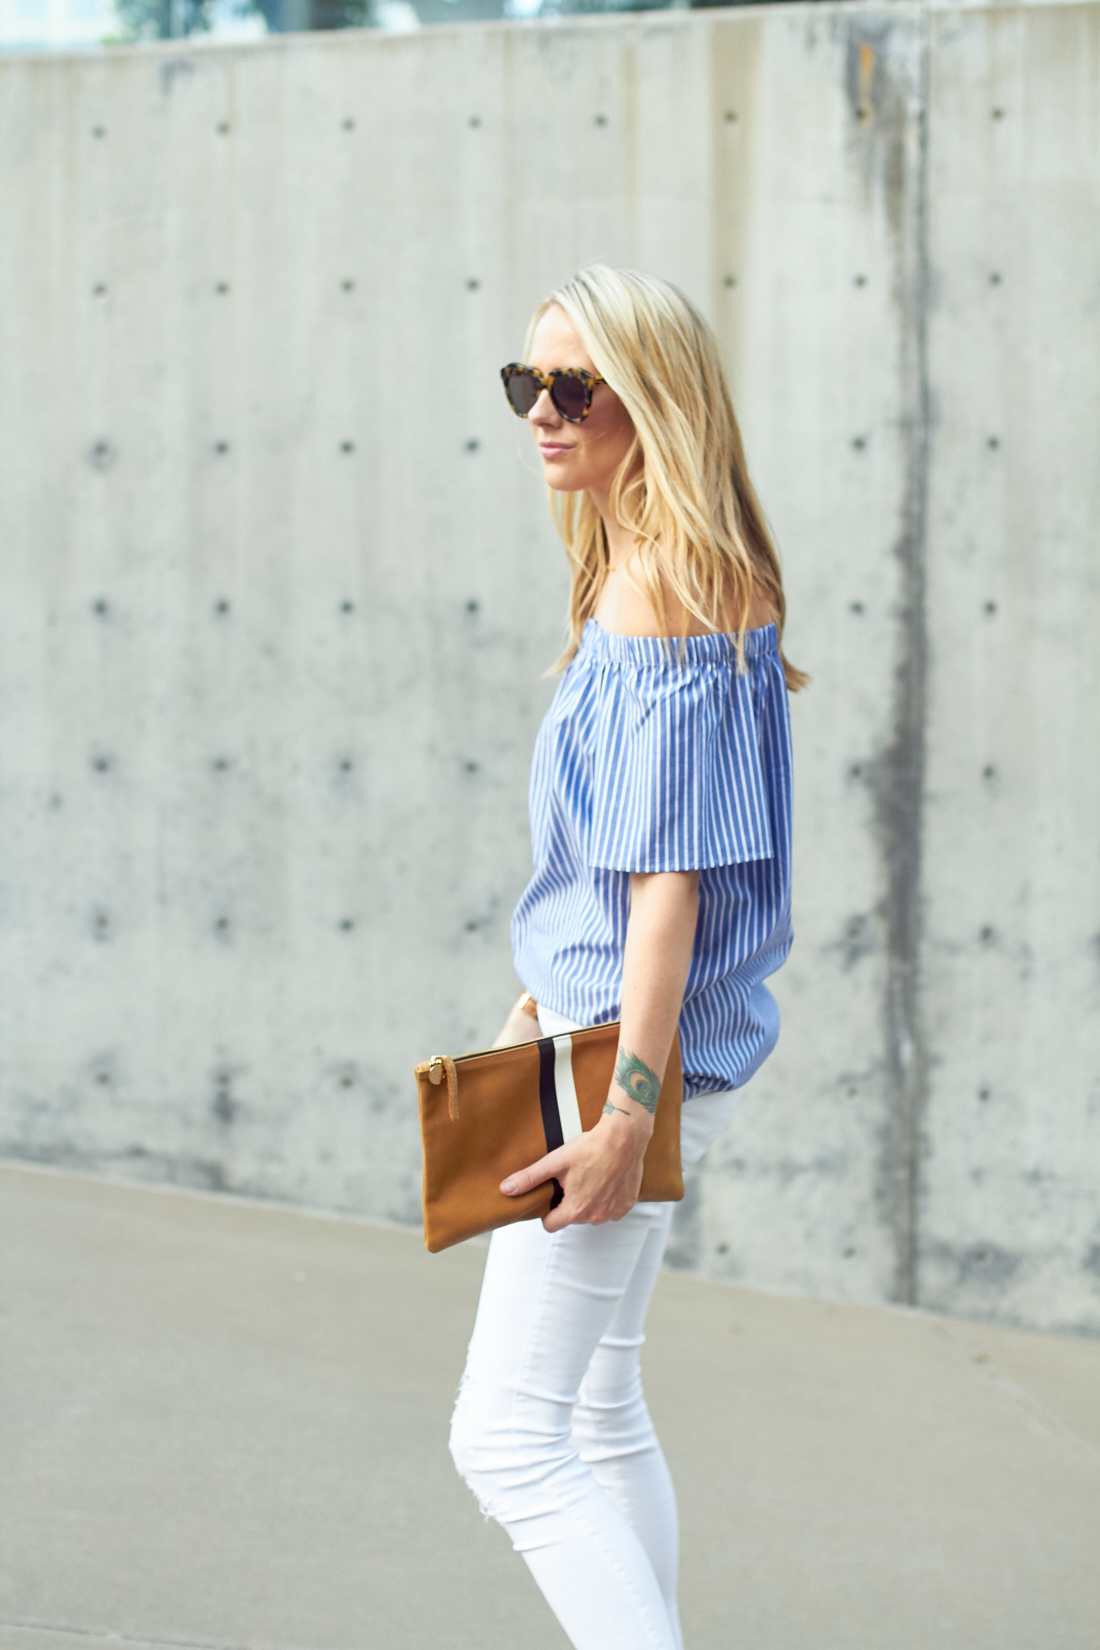 fashion-jackson-banana-republic-blue-stripe-off-the-shoulder-top-white-skinny-jeans-clare-v-clutch-karen-walker-number-one-sunglasses